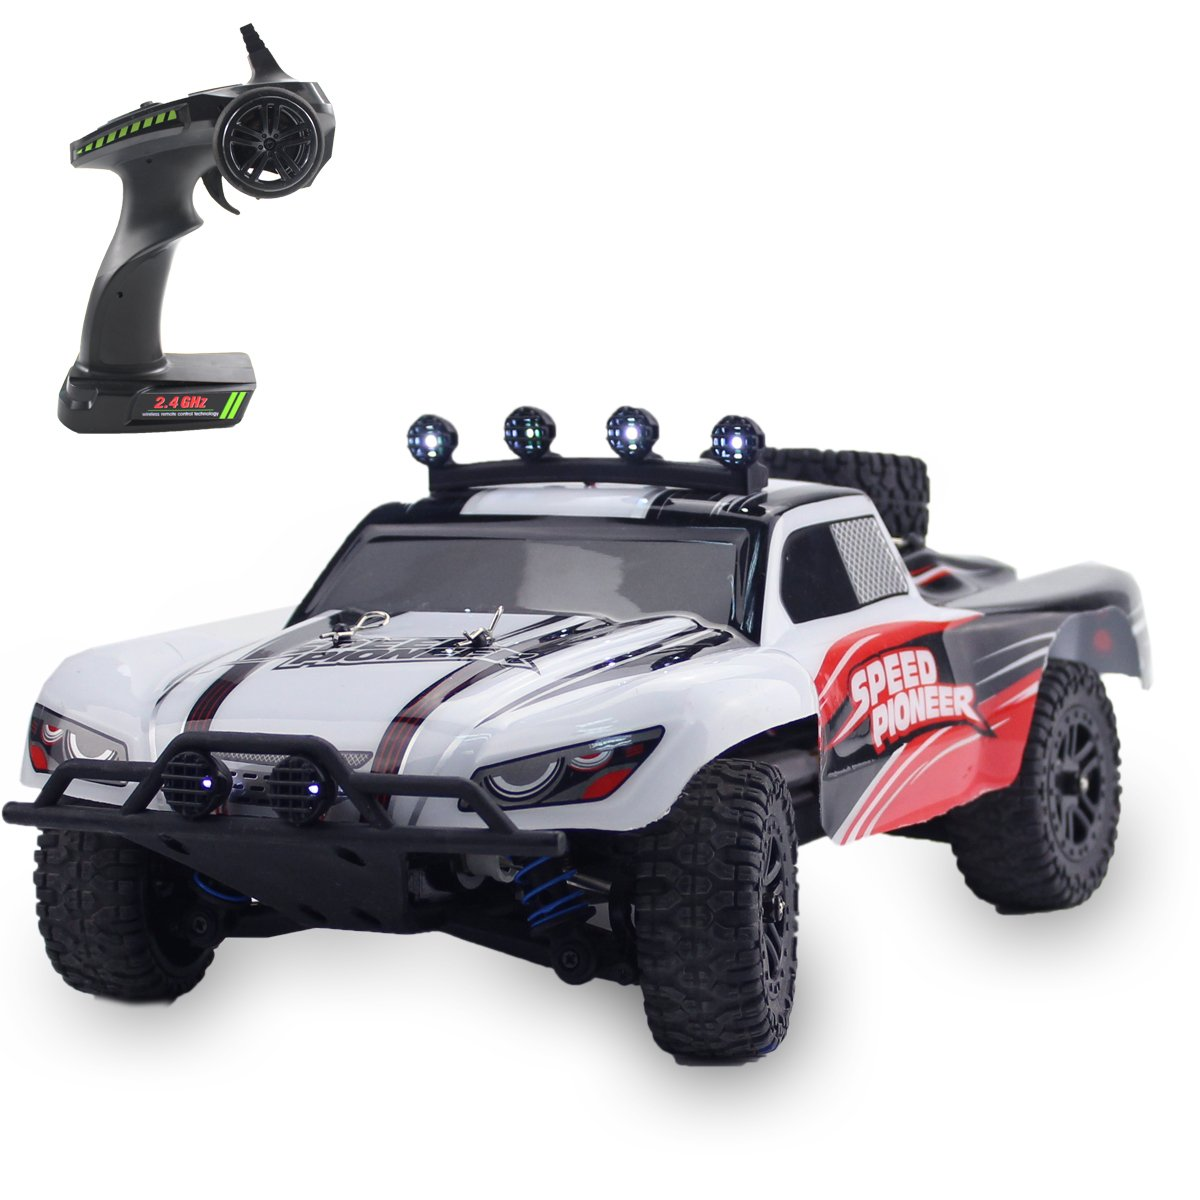 Fistone 1:18 RC Car RTR High Speed Racing Monster Truck 4WD Rock Crawler Off Road Dune Buggy Full Scale 2.4G Remote Control Hobby Toys for Kids & Adults with LED Lights (White)